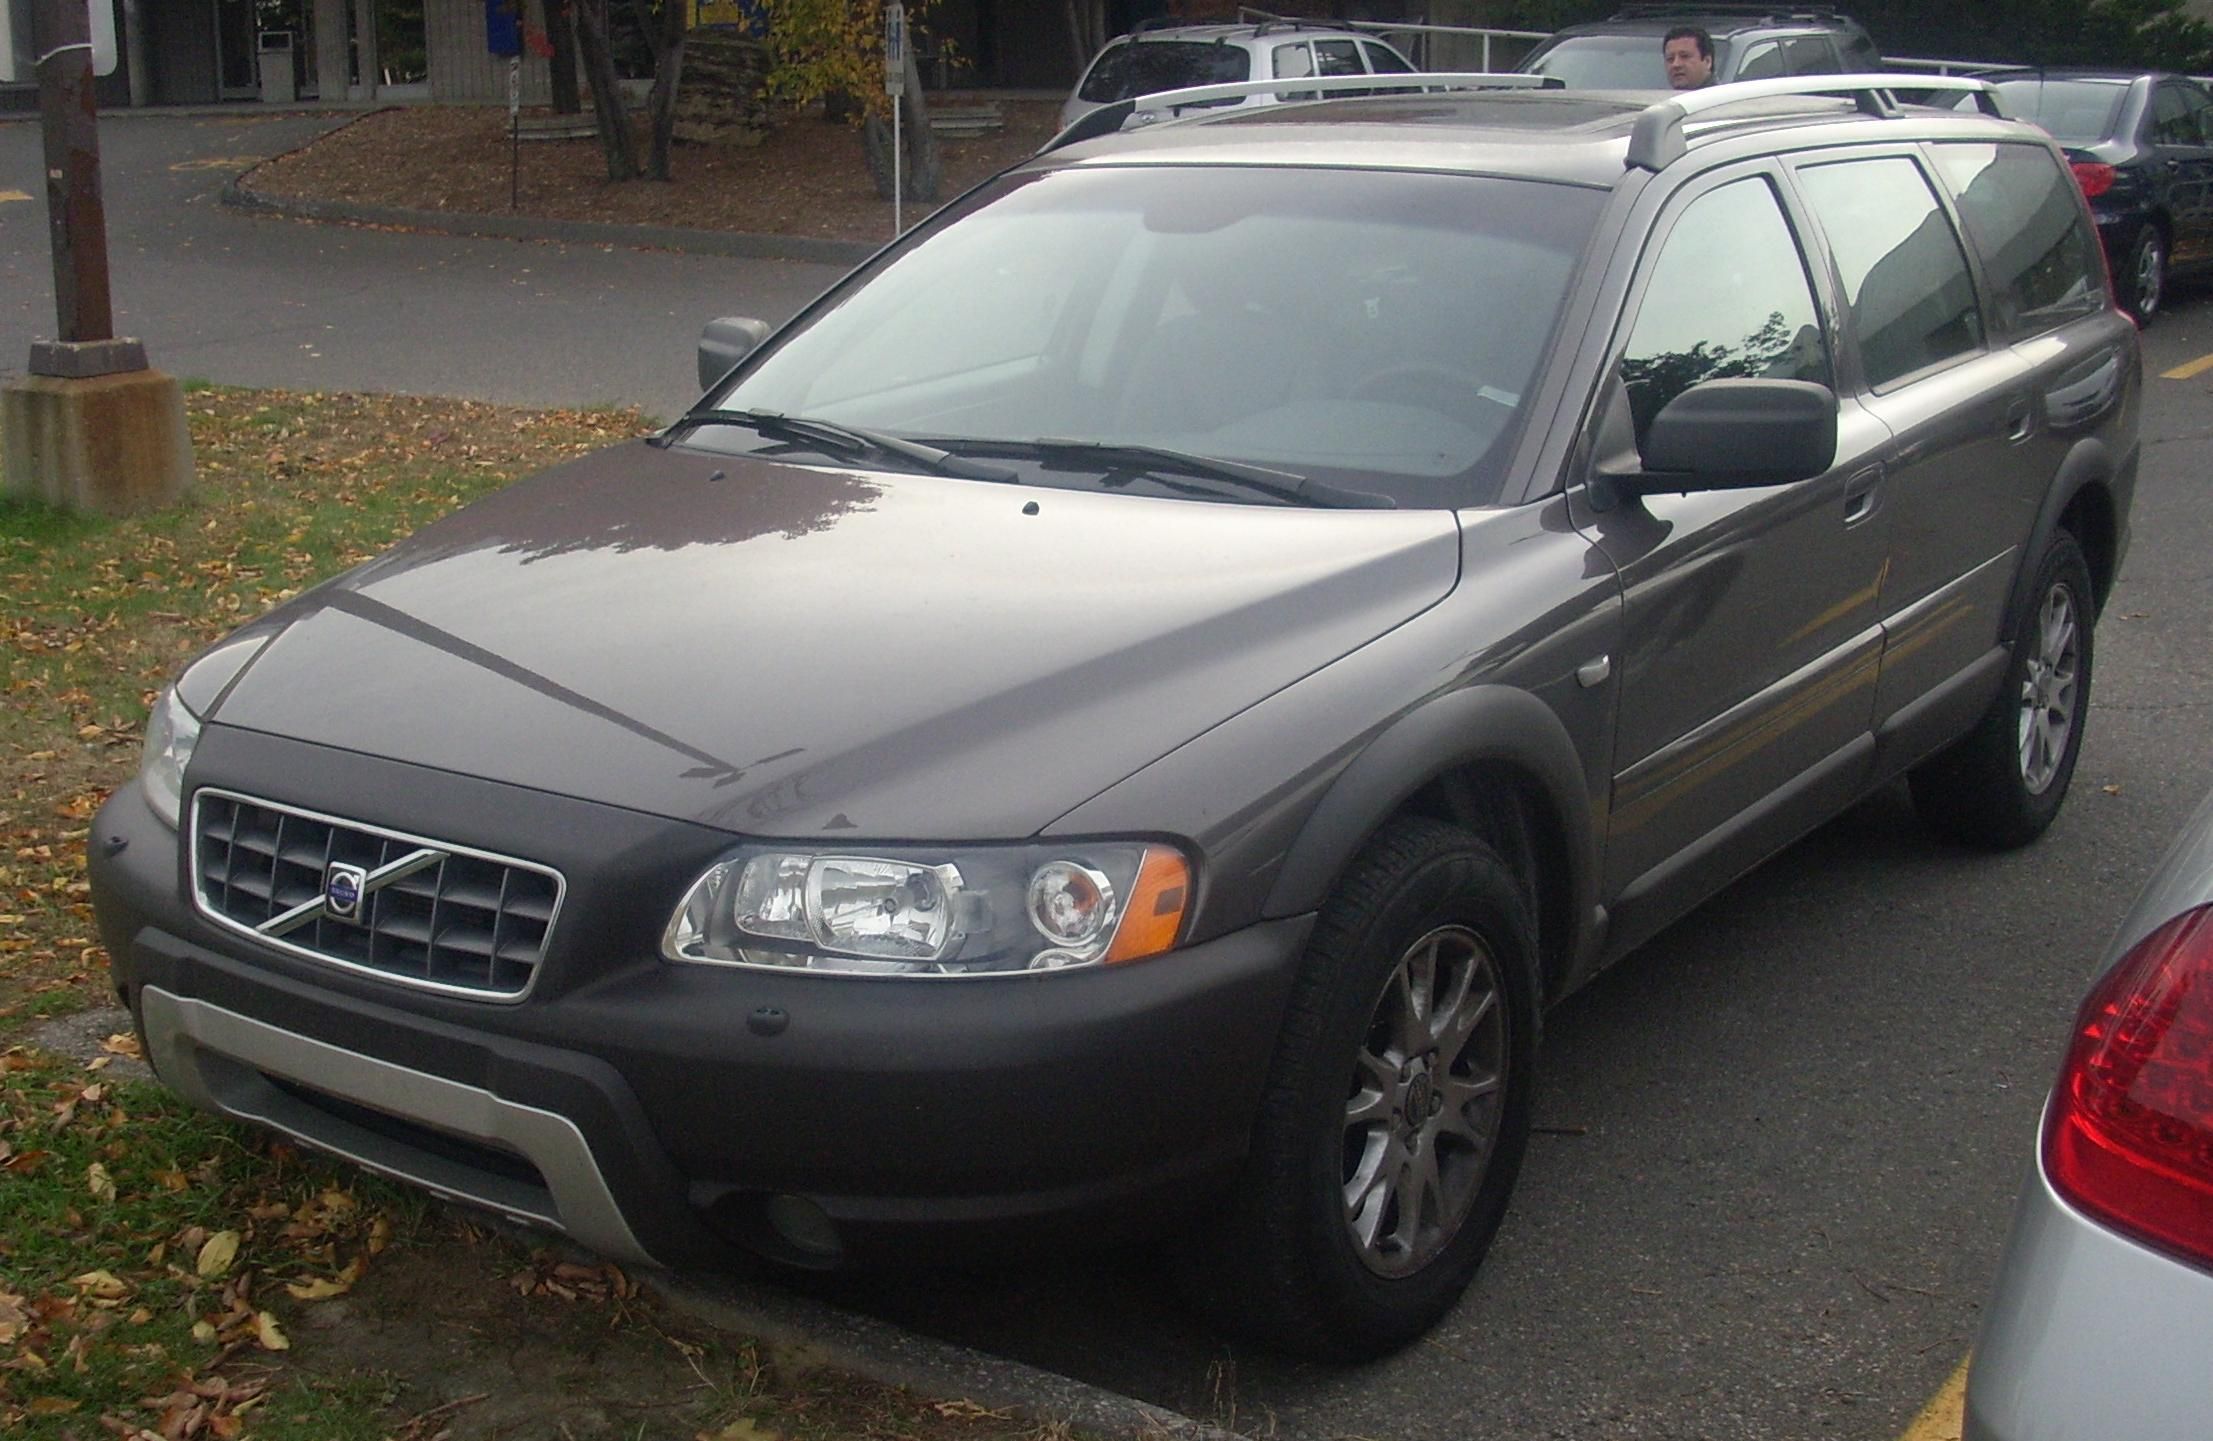 file 39 05 39 07 volvo xc70 cross country jpg wikimedia commons. Black Bedroom Furniture Sets. Home Design Ideas